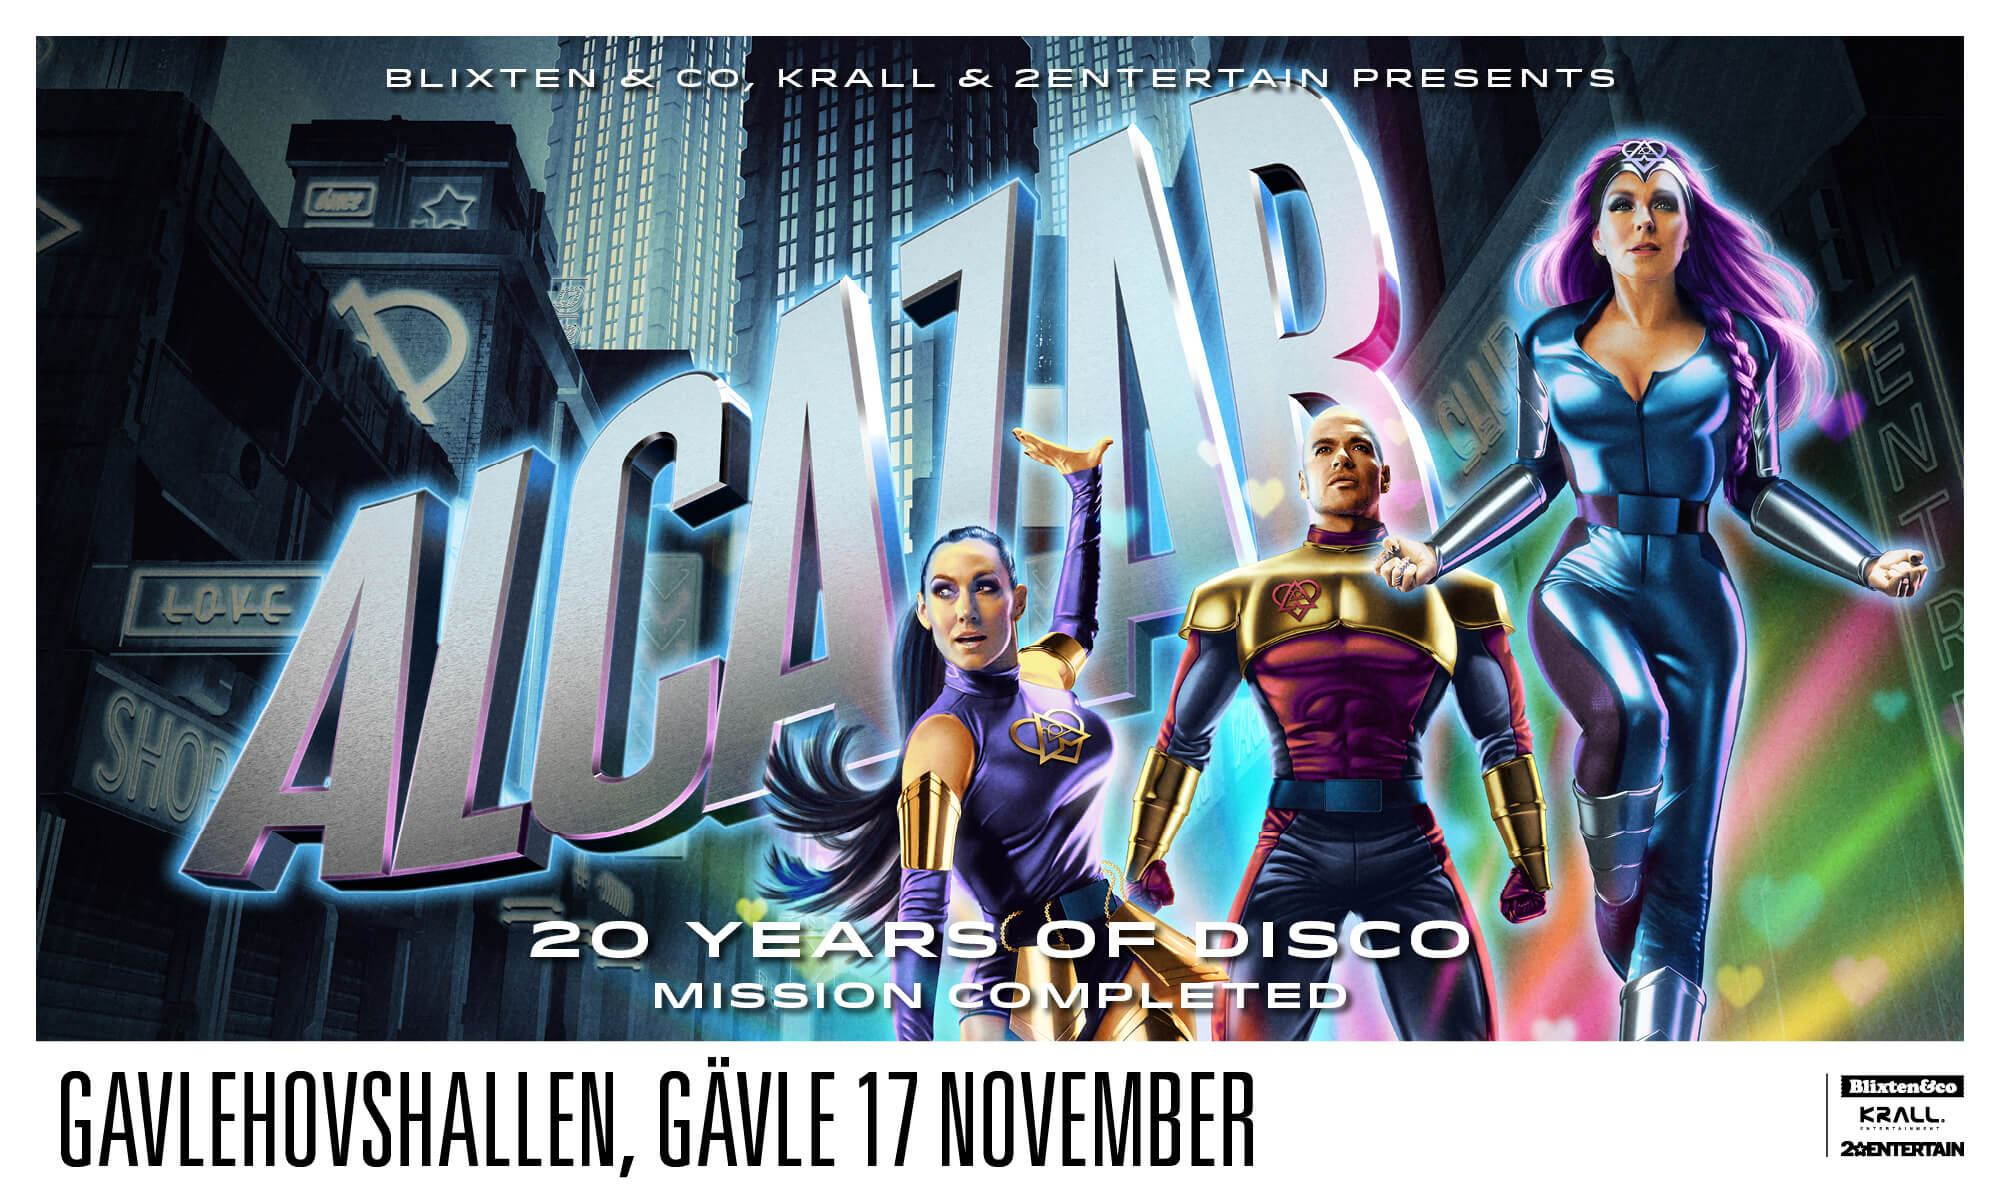 """ALCAZAR """"20 years of disco - Mission completed"""""""